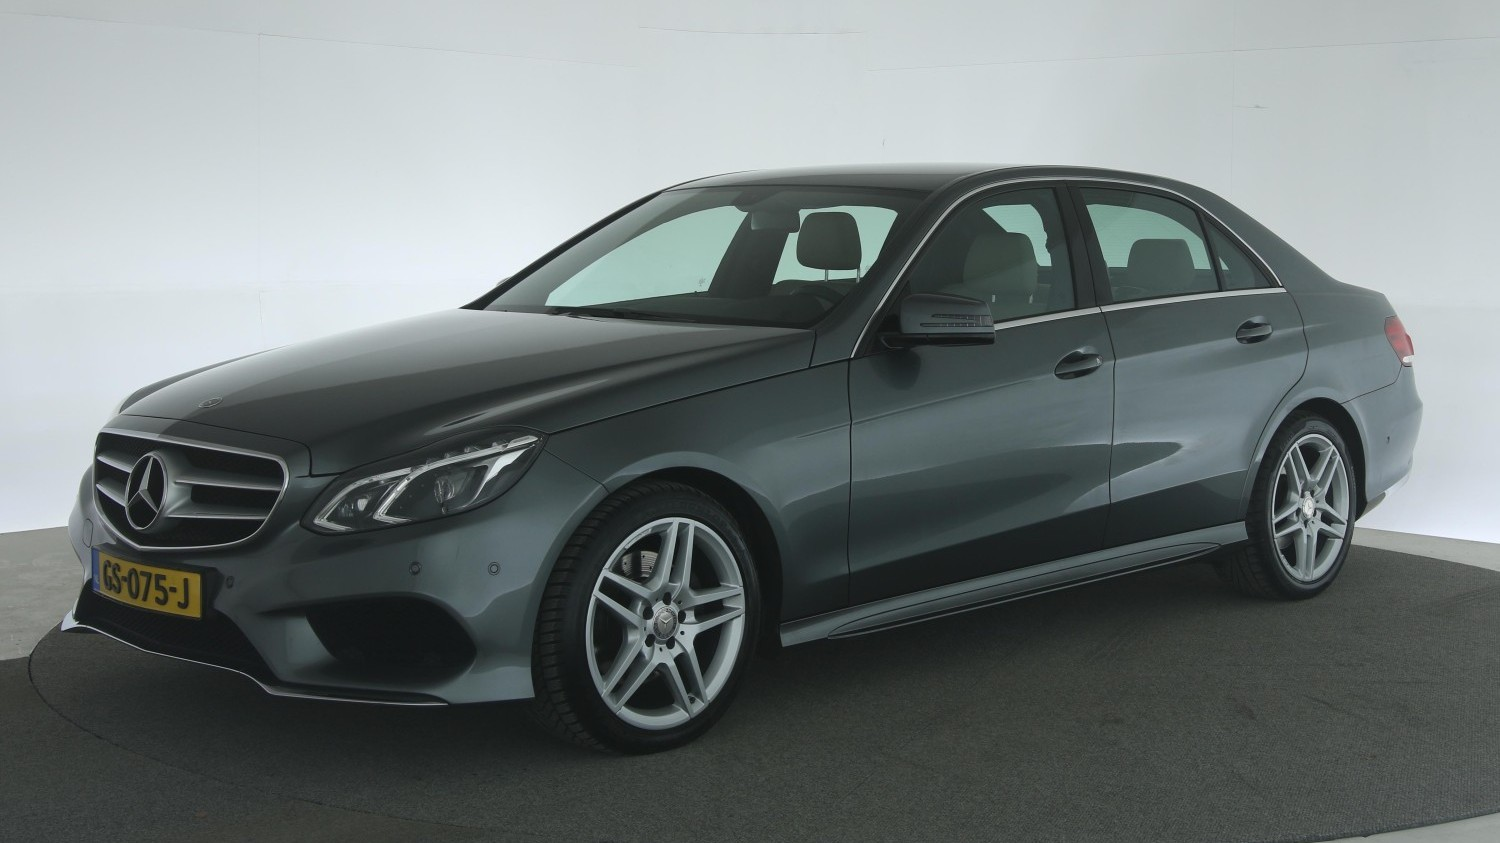 Mercedes-Benz E-Klasse Sedan 2015 GS-075-J 1